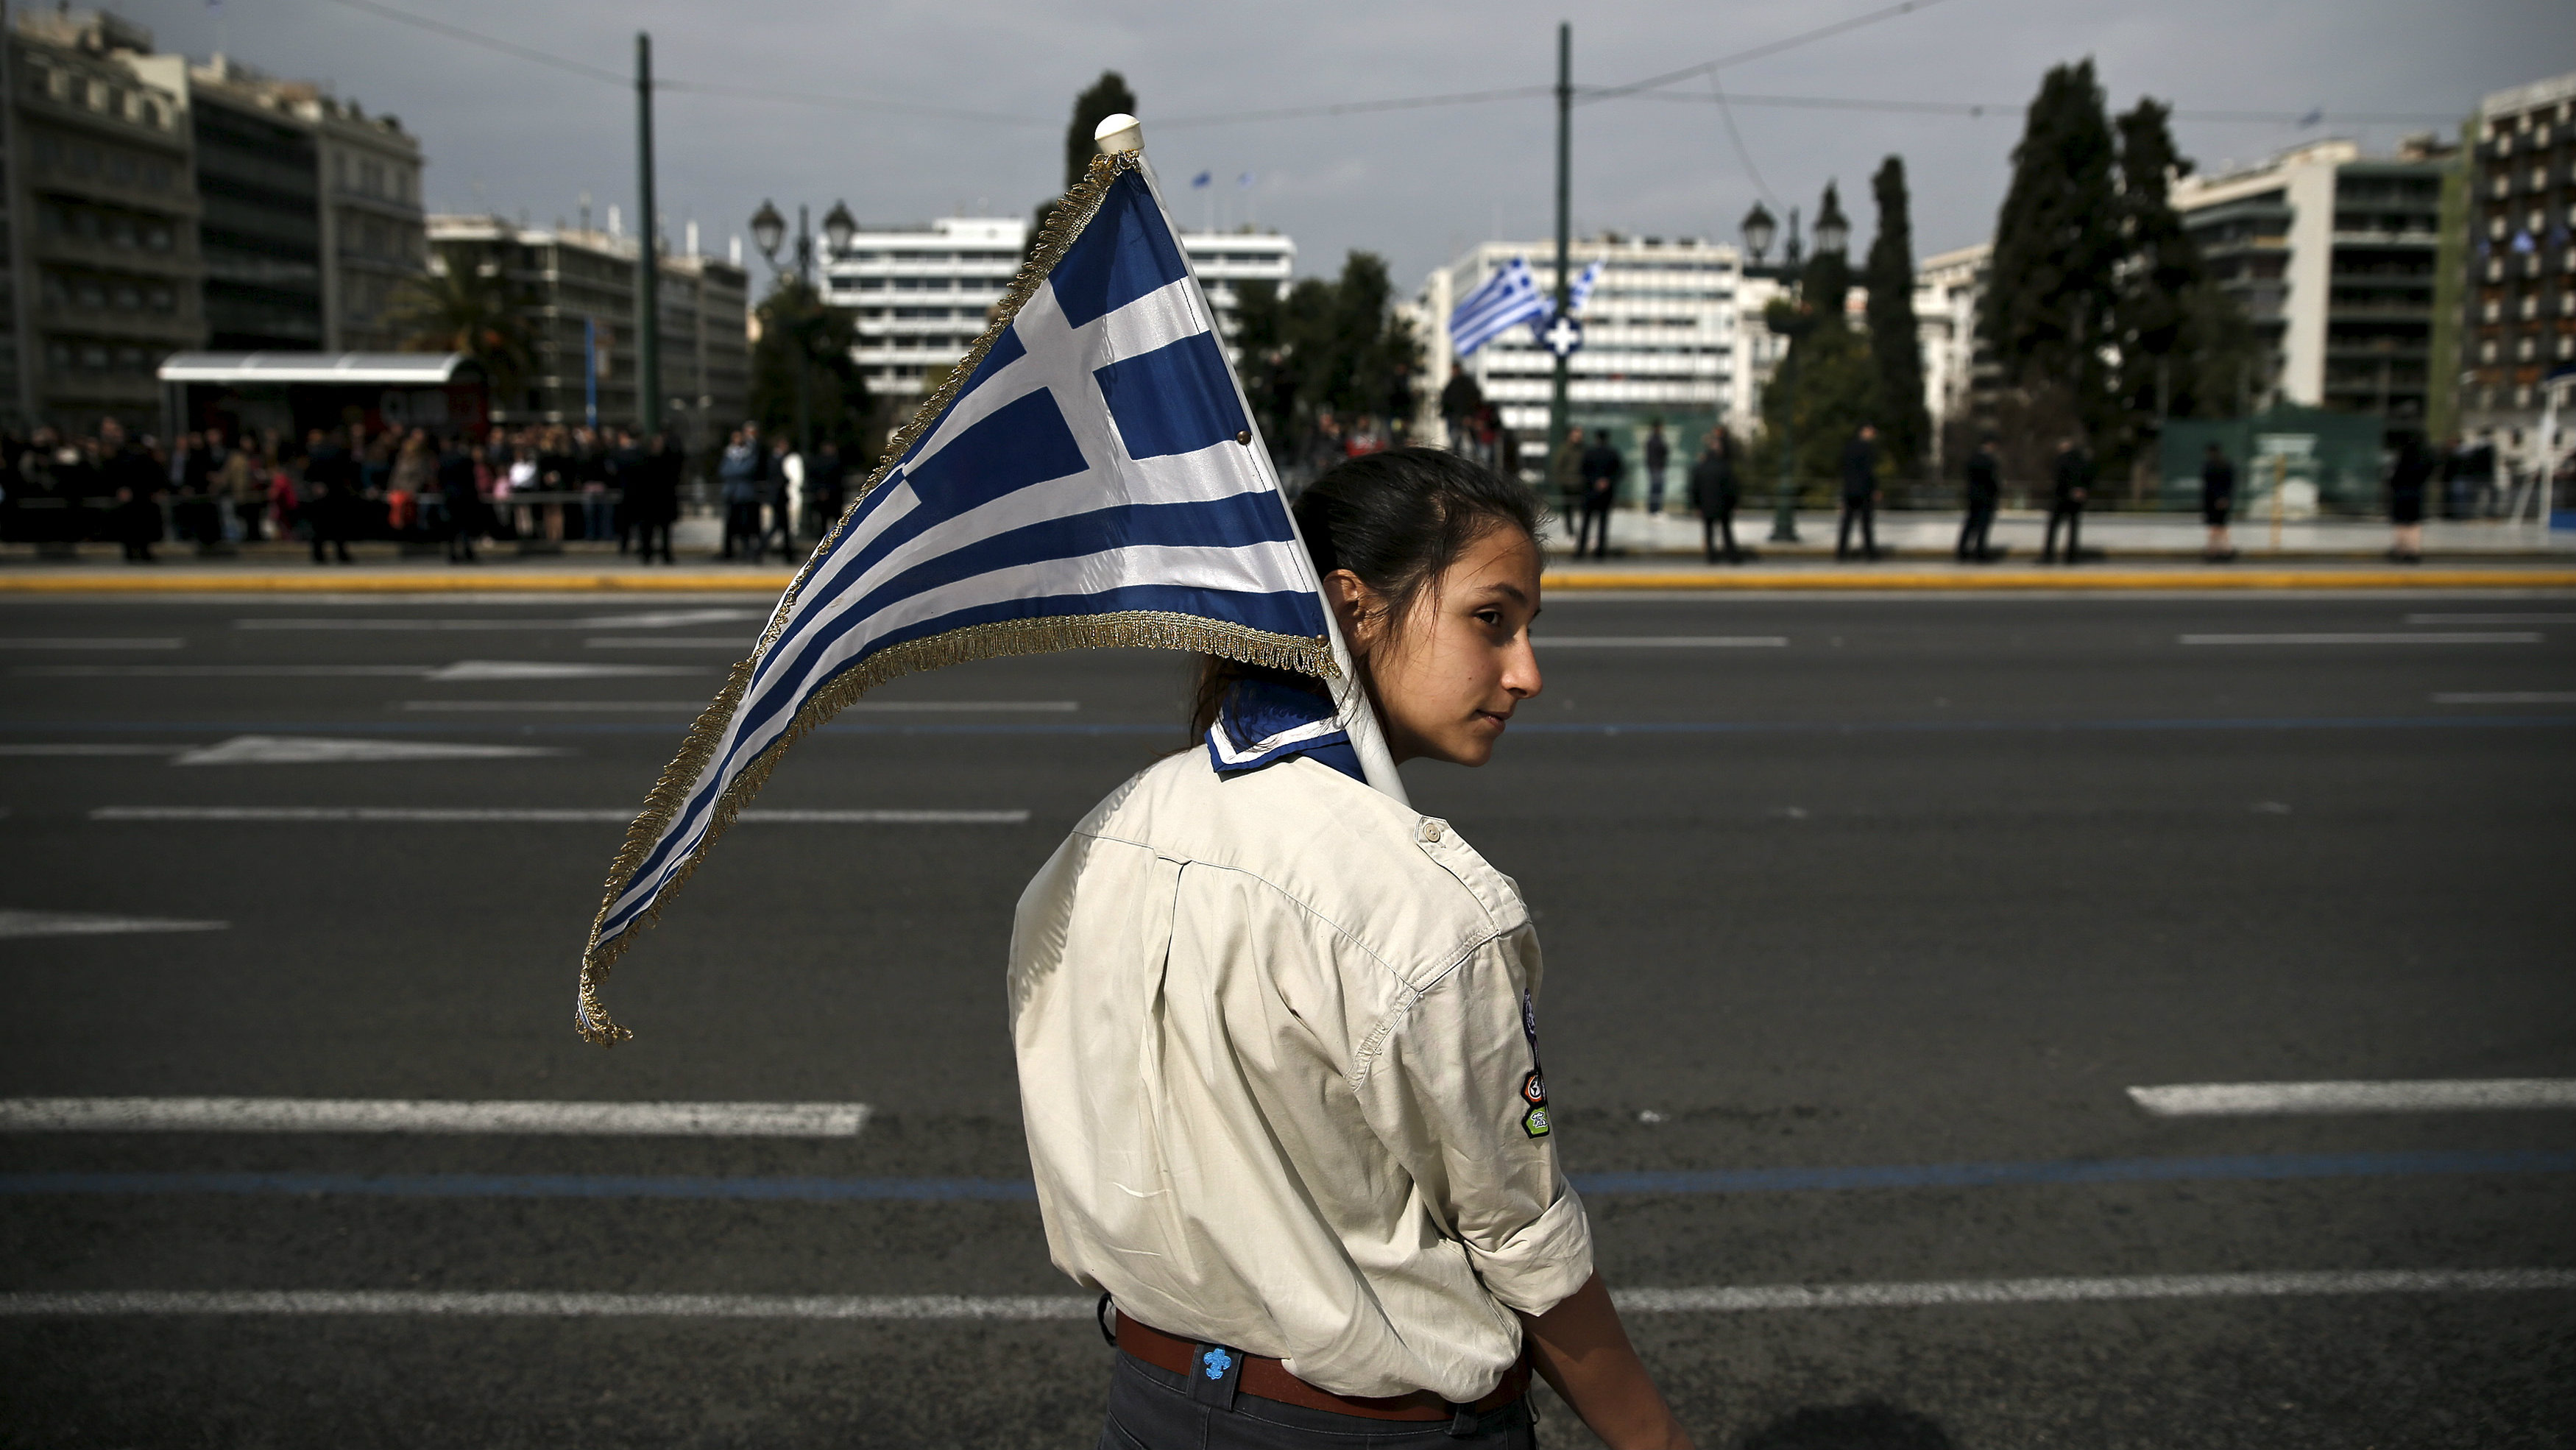 A girl scout holds a Greek national flag ahead of a student parade in Athens March 24, 2015, a day before a military parade to mark Greece's Independence Day. Greece said it will present a package of reforms to its euro zone partners by next Monday in hope of unlocking aid to help it deal with a cash crunch and avoid default.